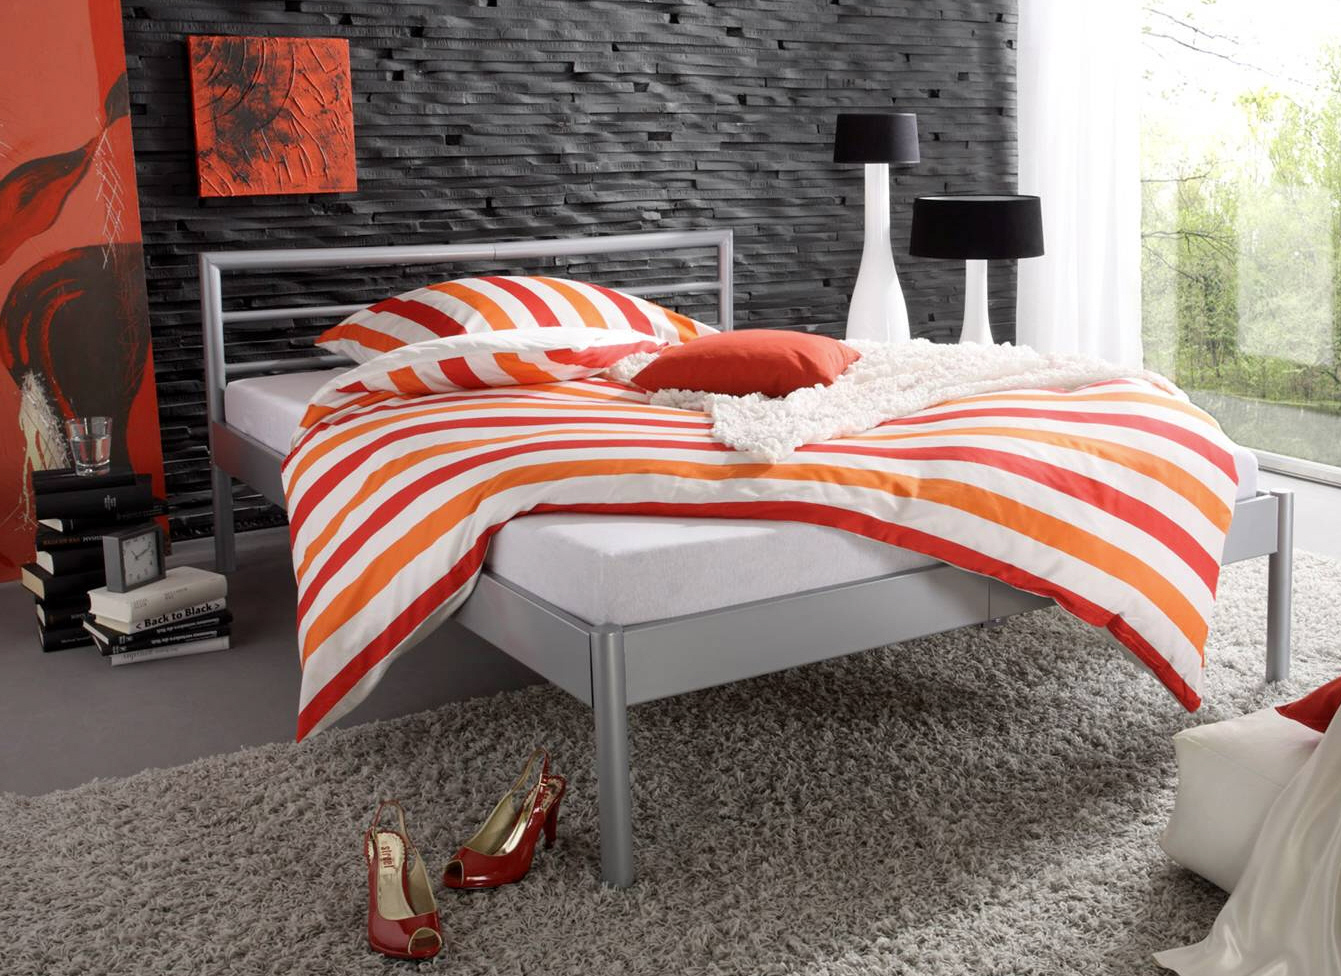 metallbett bett 140x200 silber doppelbett marius sixbros ebay. Black Bedroom Furniture Sets. Home Design Ideas